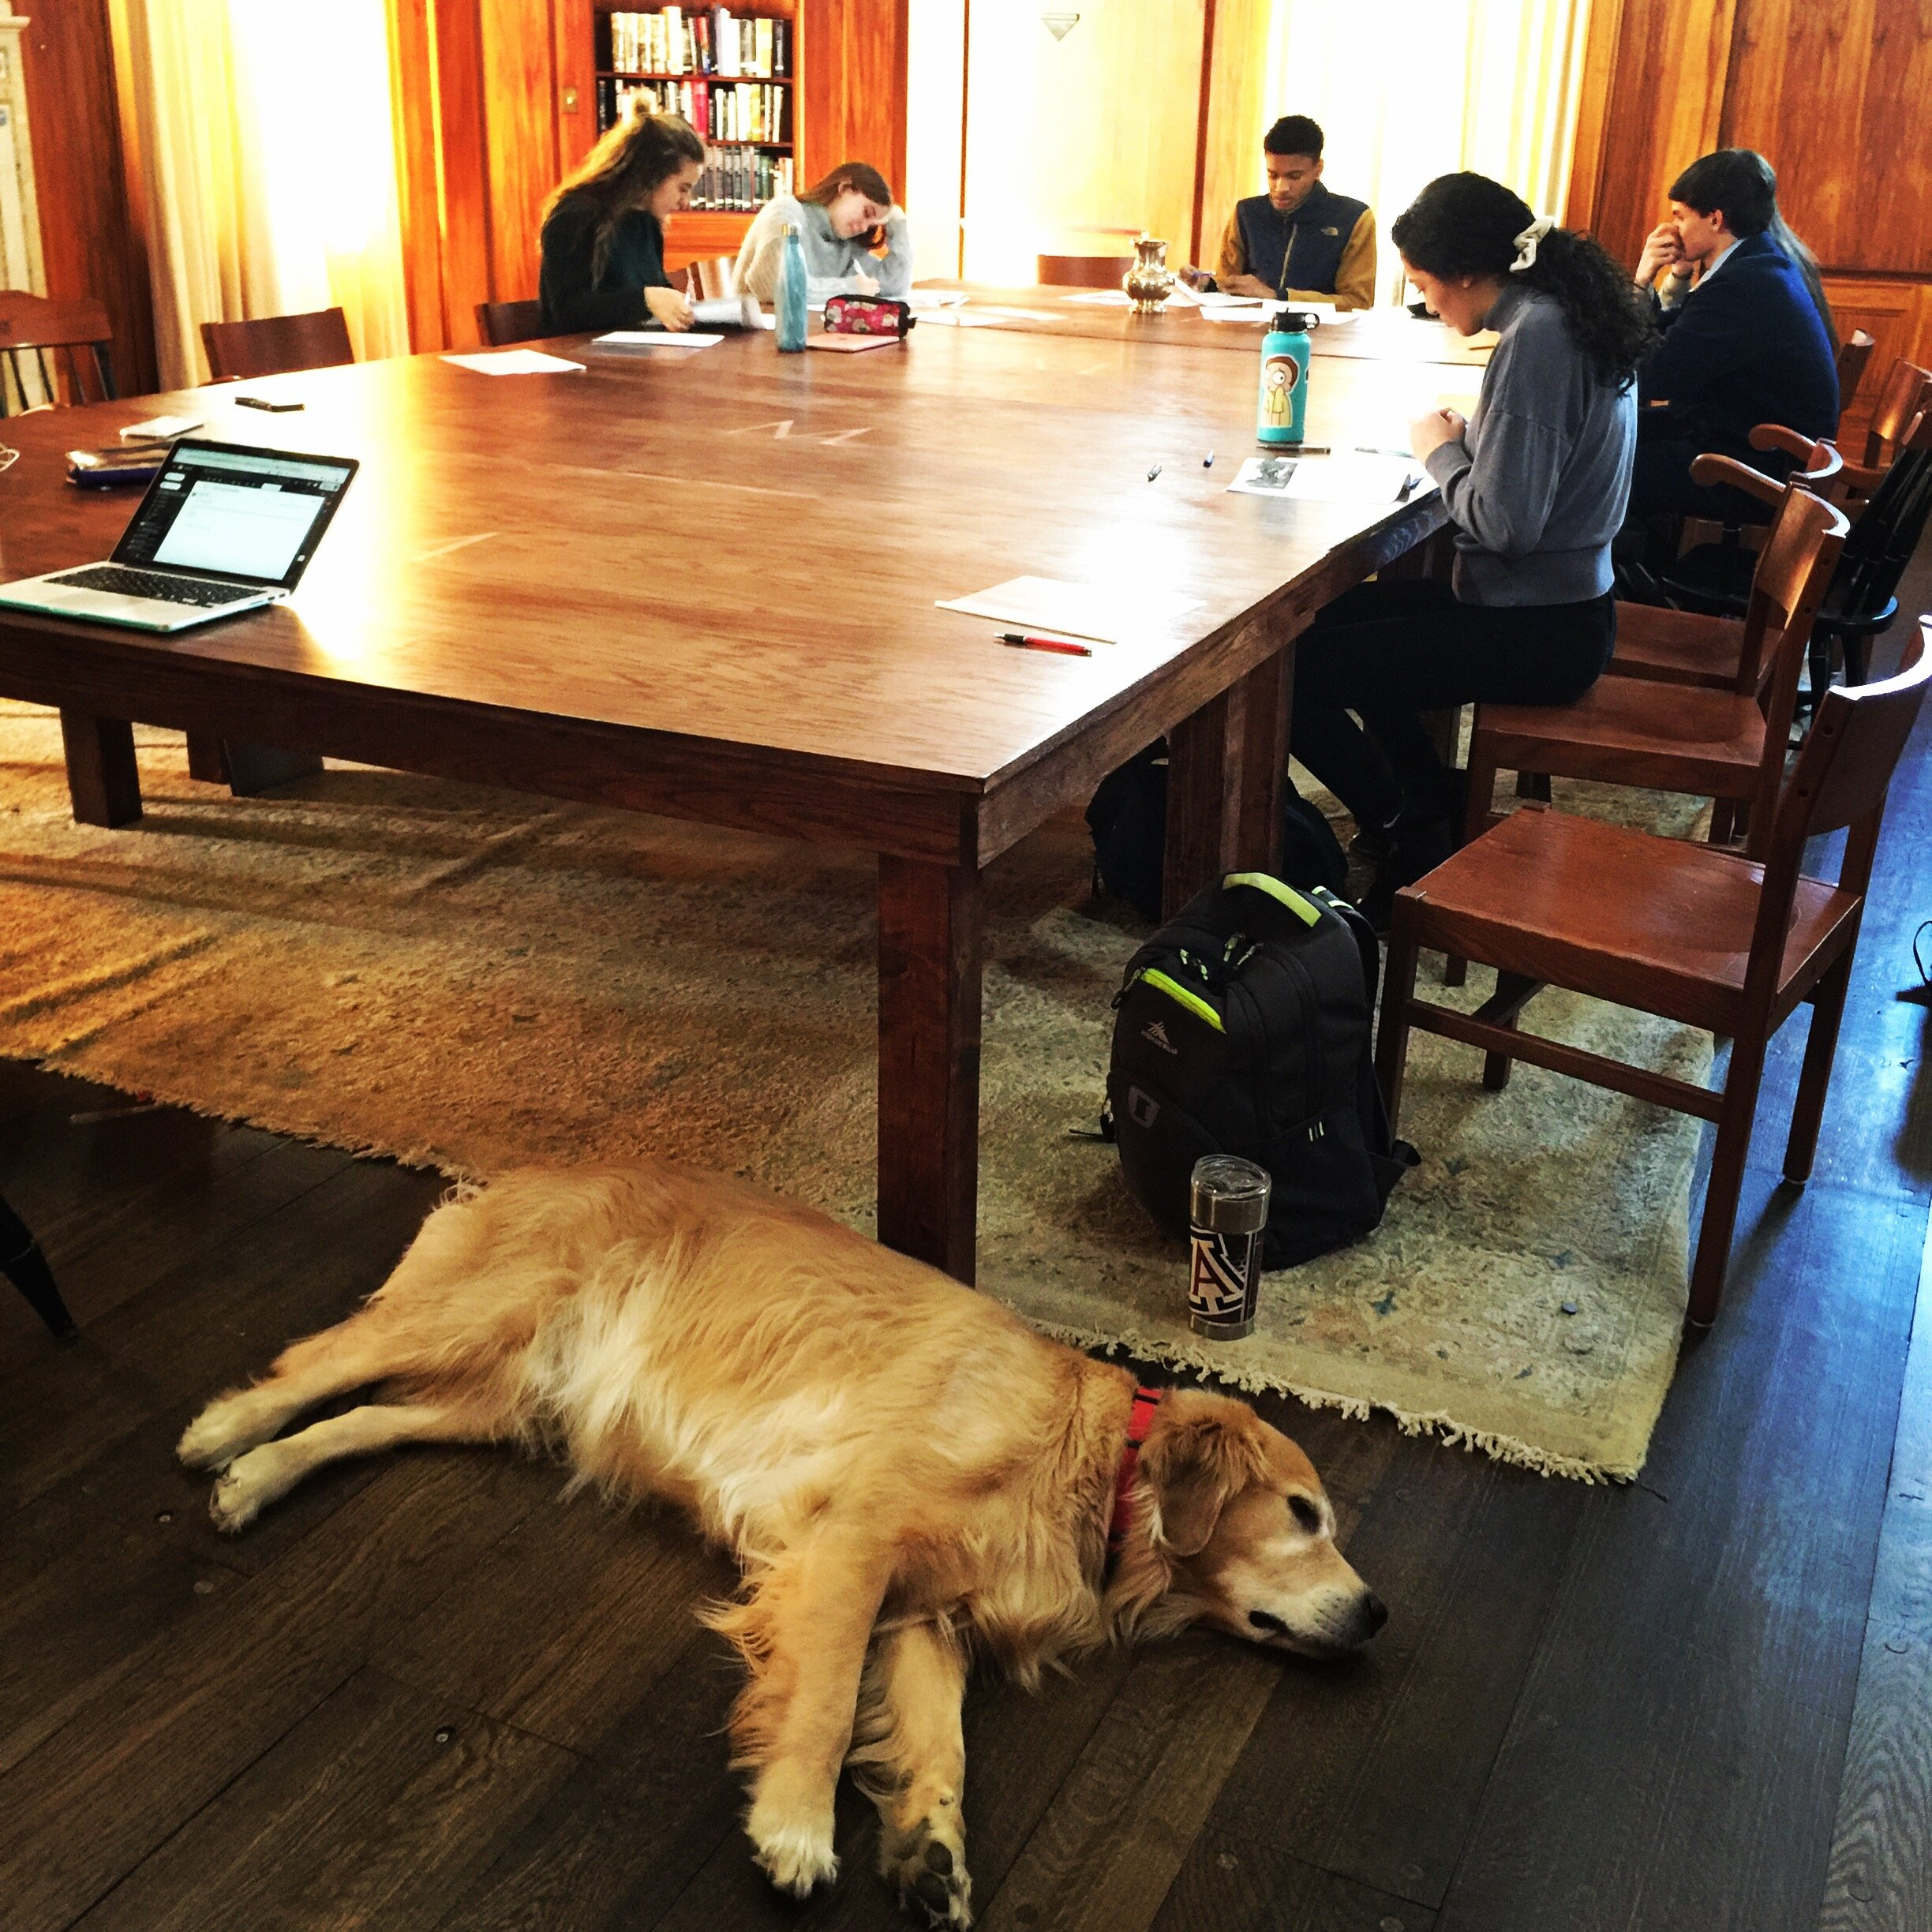 Our Harkness table approach in the humanities is pleasing to students and golden retriever, Buddy.